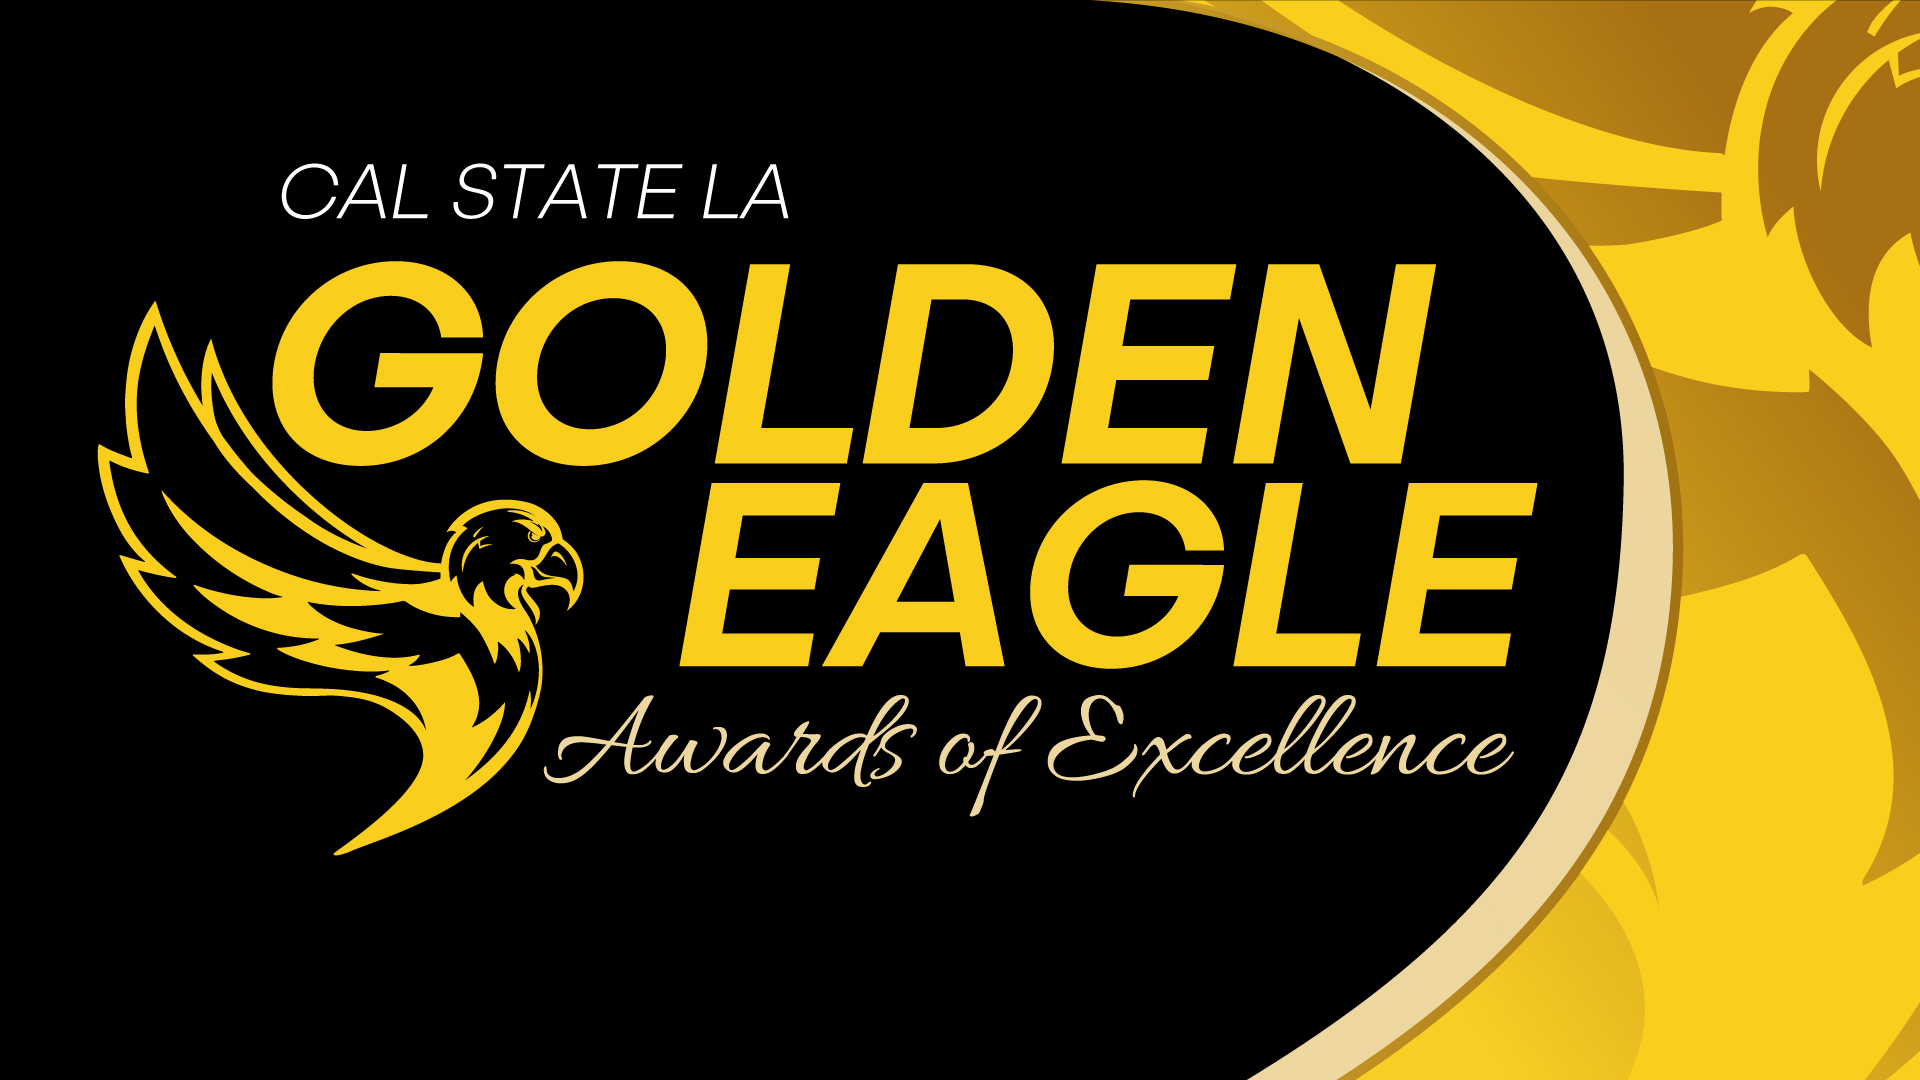 Golden Eagle Award of Excellence Cover